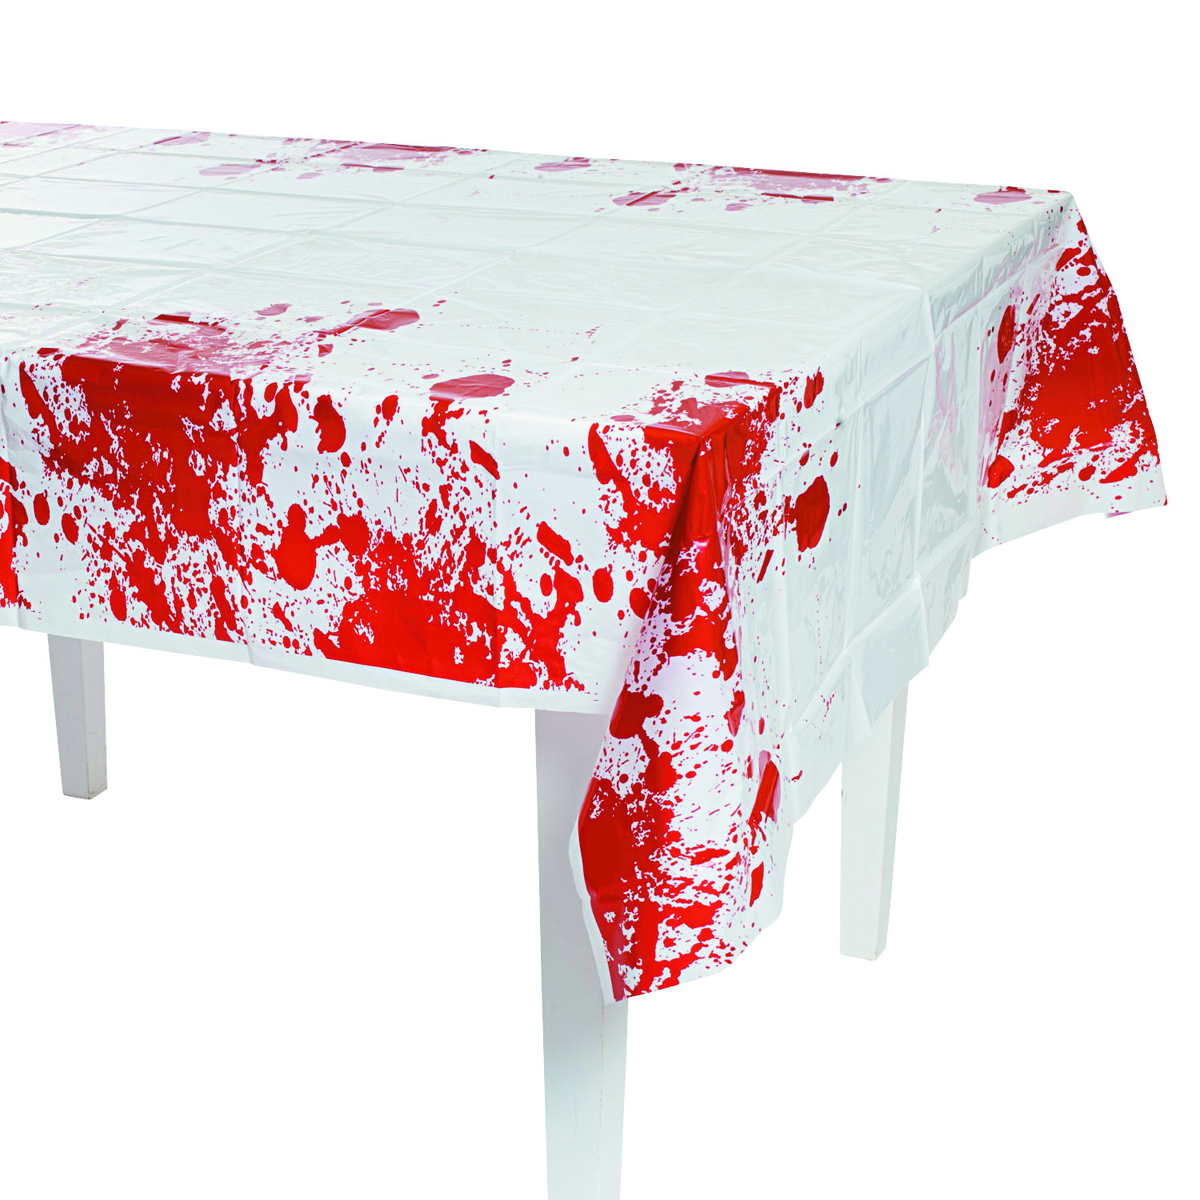 ZOMBIE PARTY PLASTIC ZOMBIE PARTY TABLE